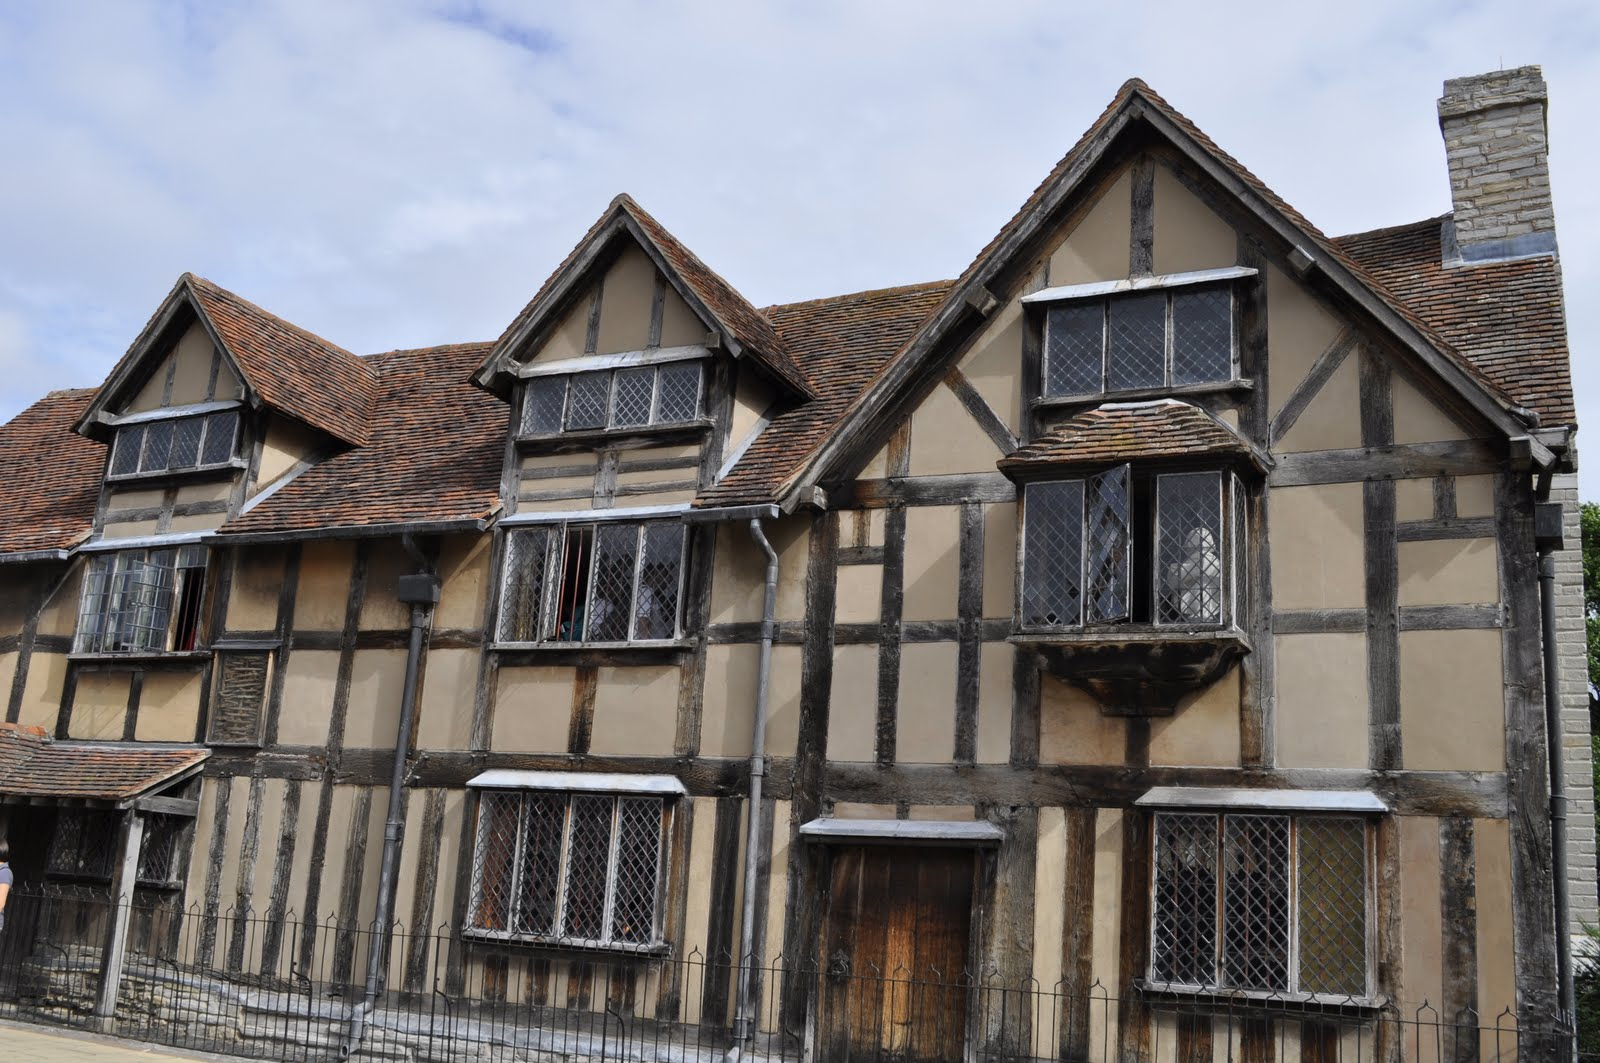 Start Your Walking Tour At Shakespeares Birthplace On Henley Street Where The Great Bard Was Born 23 April 1564 You Can Purchase A Special Combination